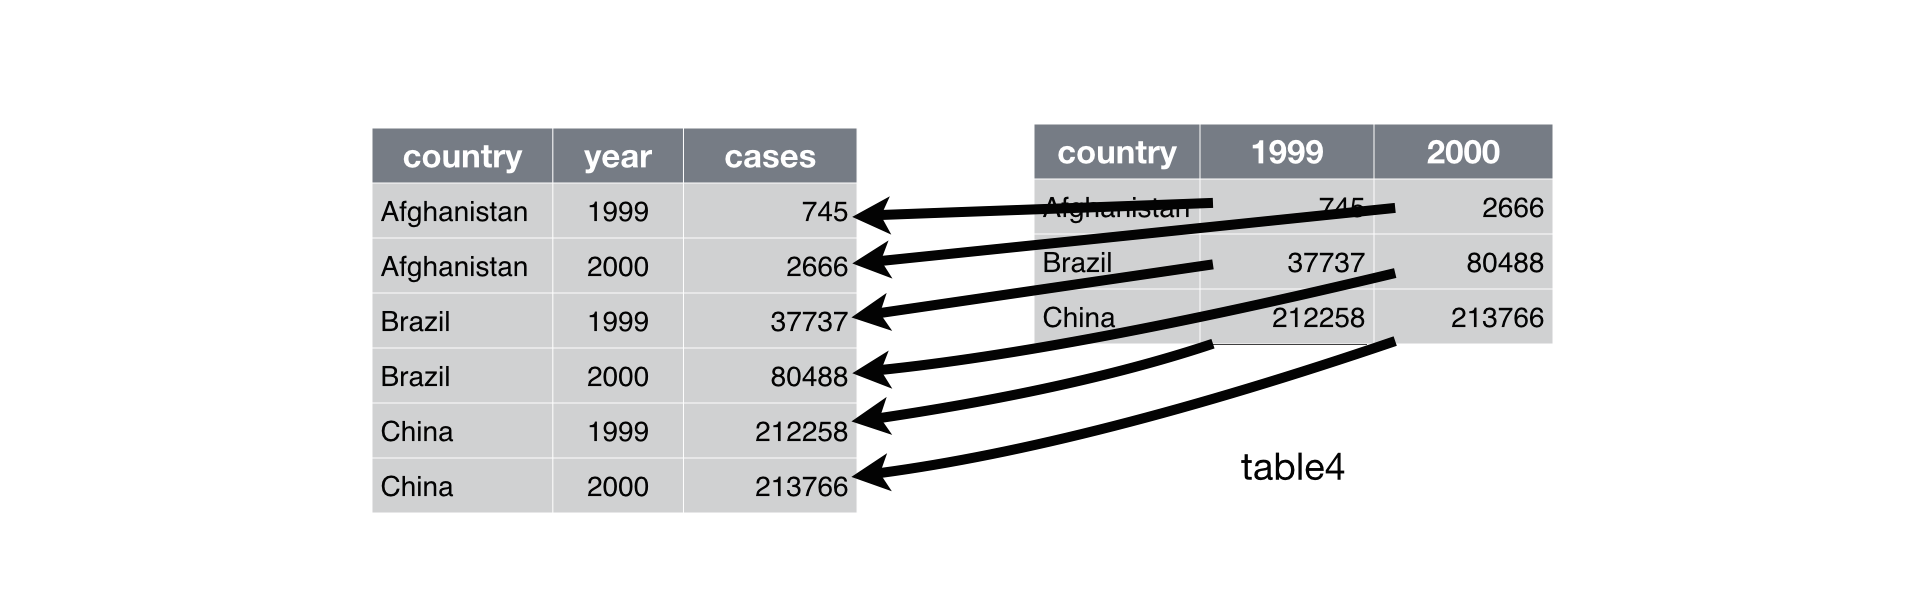 Data Tidying · Data Science with R